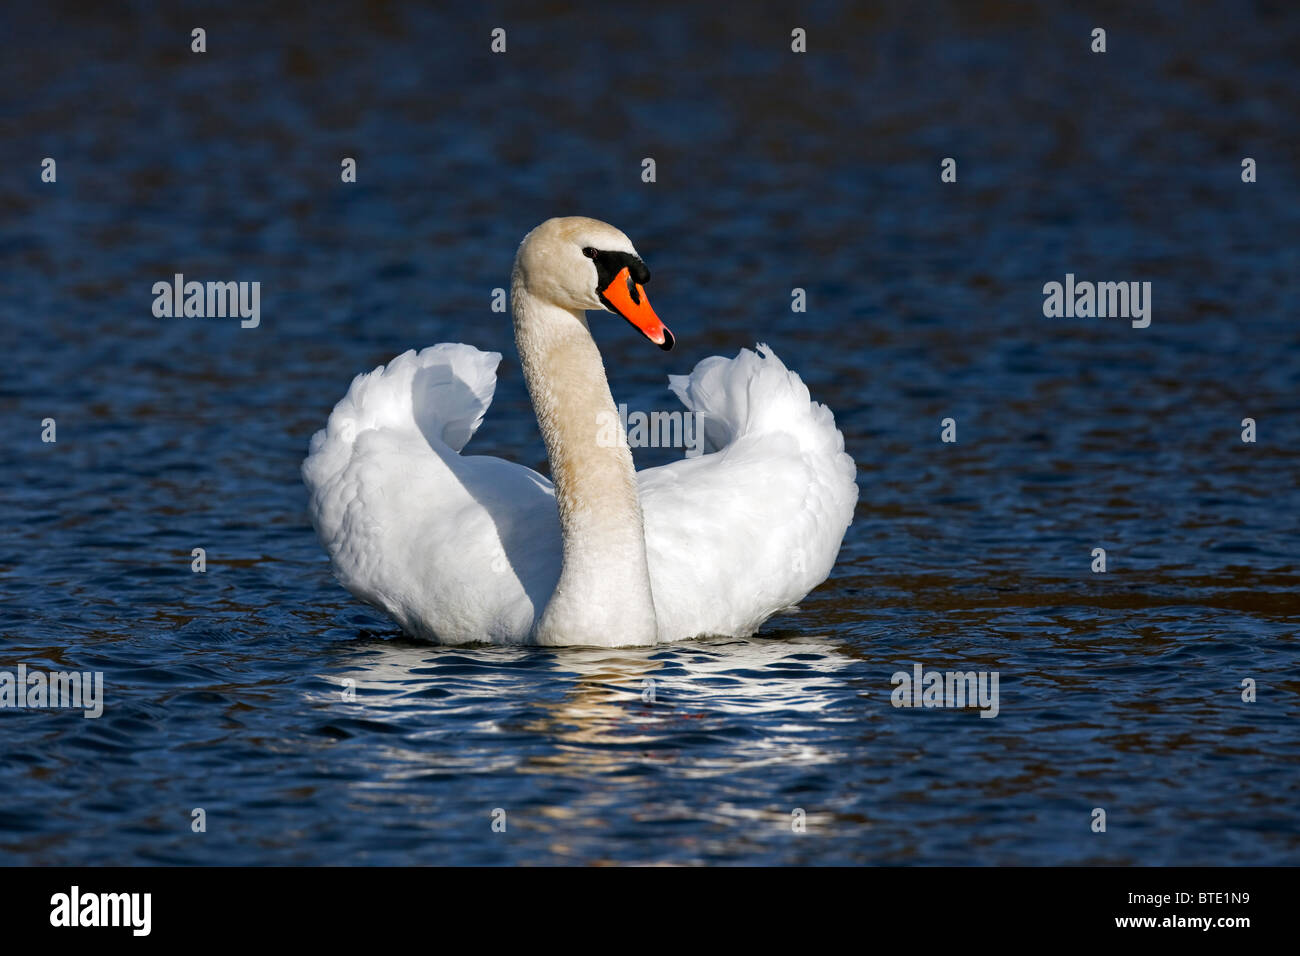 Mute swan (Cygnus olor) on lake showing busking threat display, Germany - Stock Image